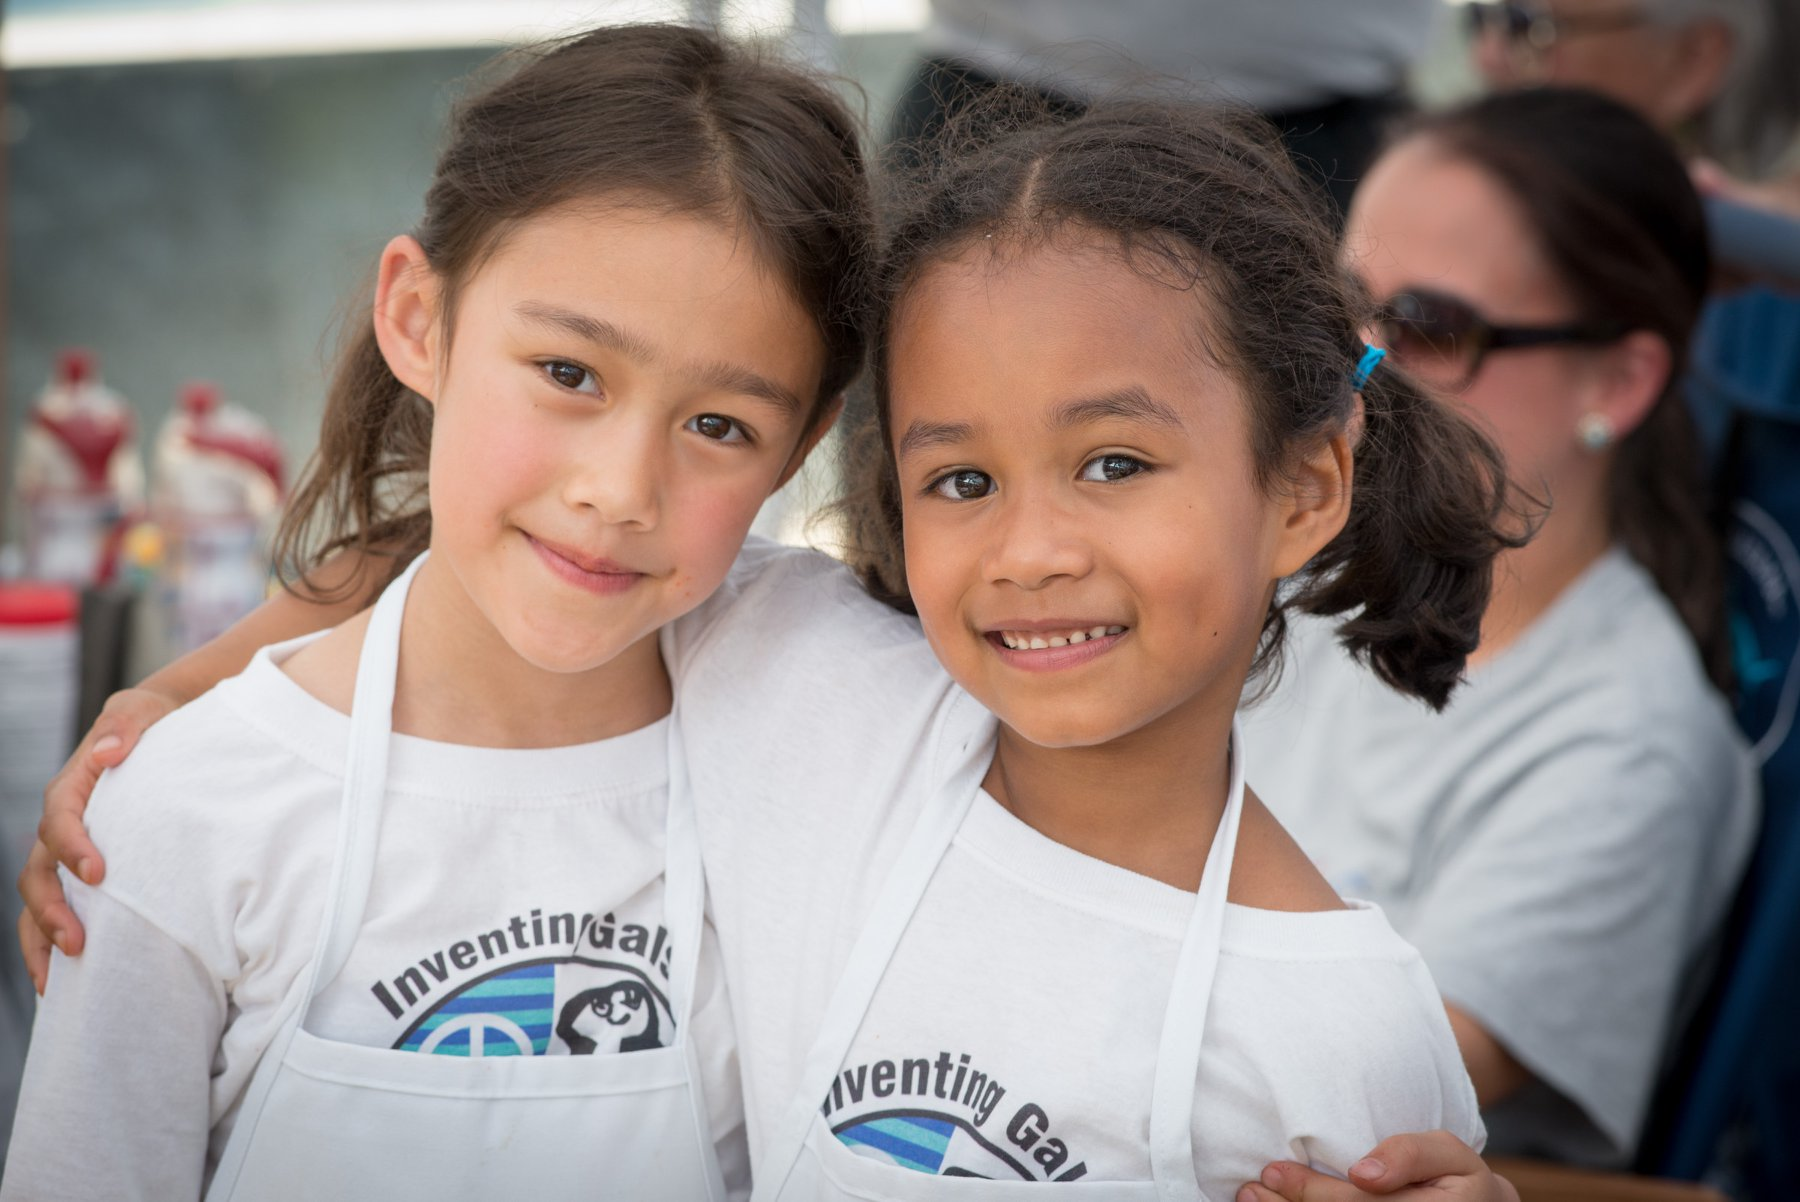 Friends Zaia and Esme sold homemade popsicles at the Acton Children's Business Fair of Washington, DC.